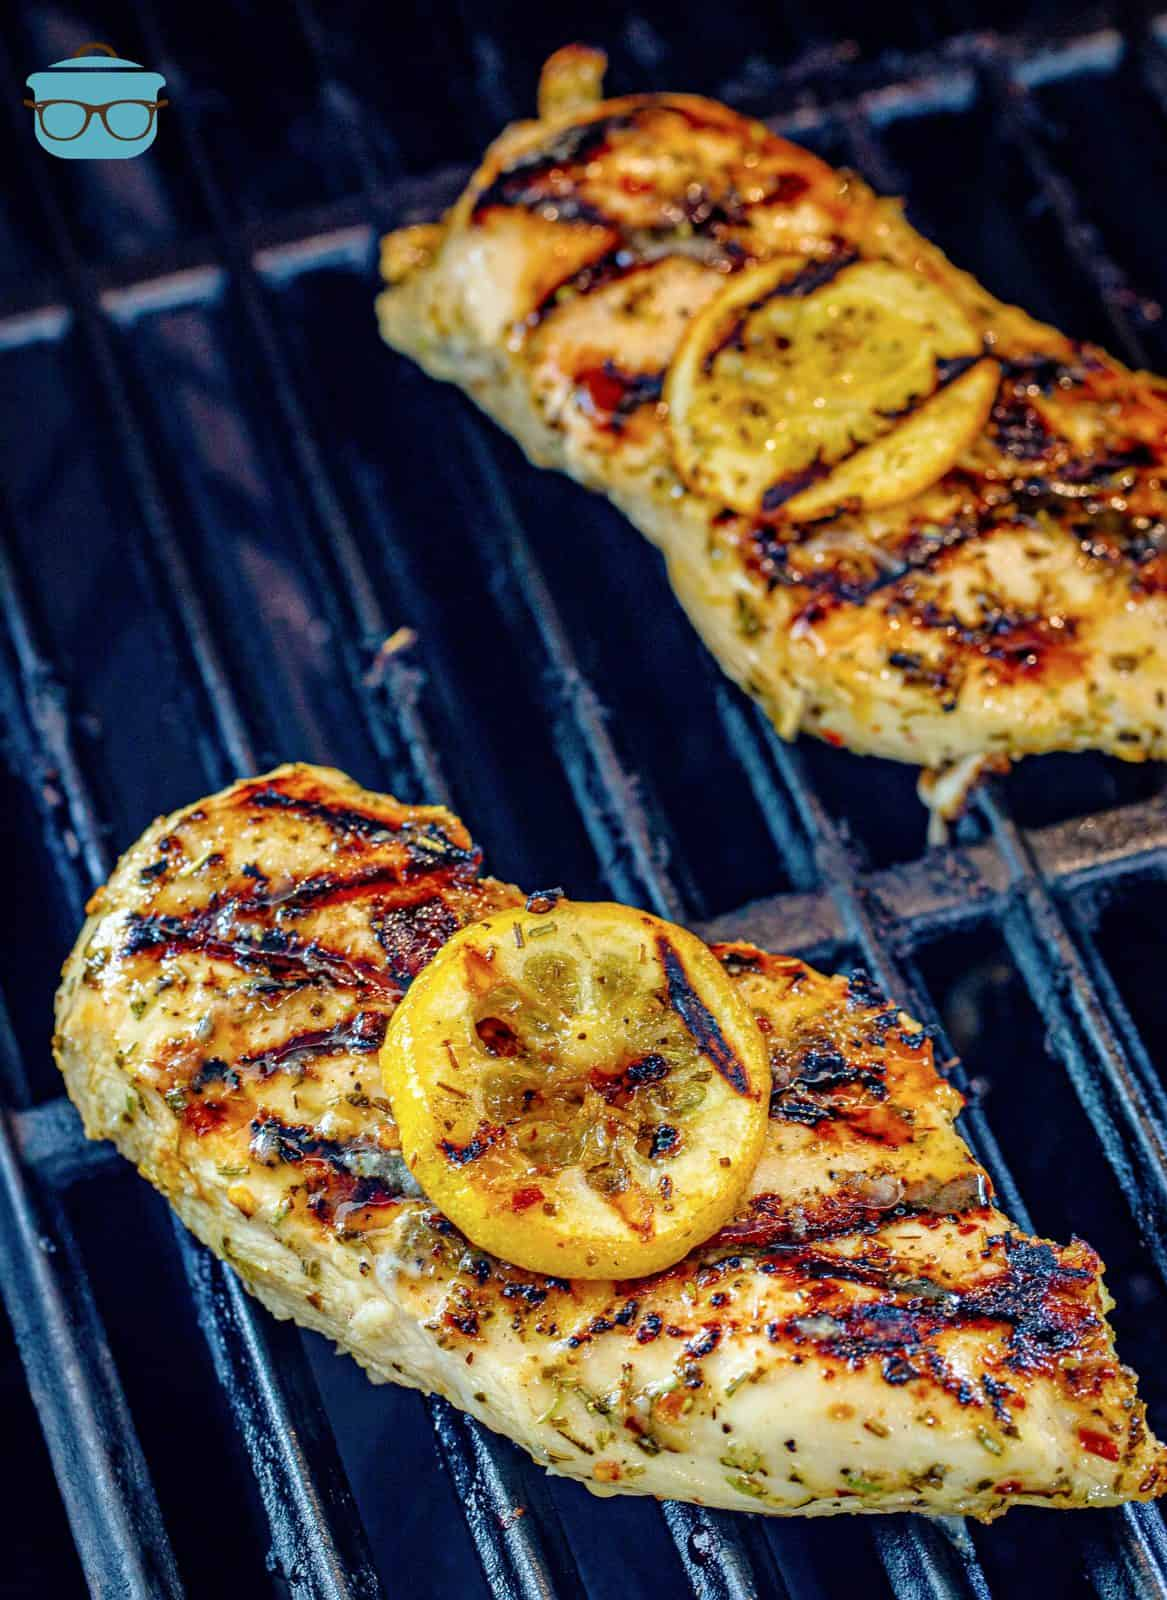 two cooked chicken breasts shown on a grill.